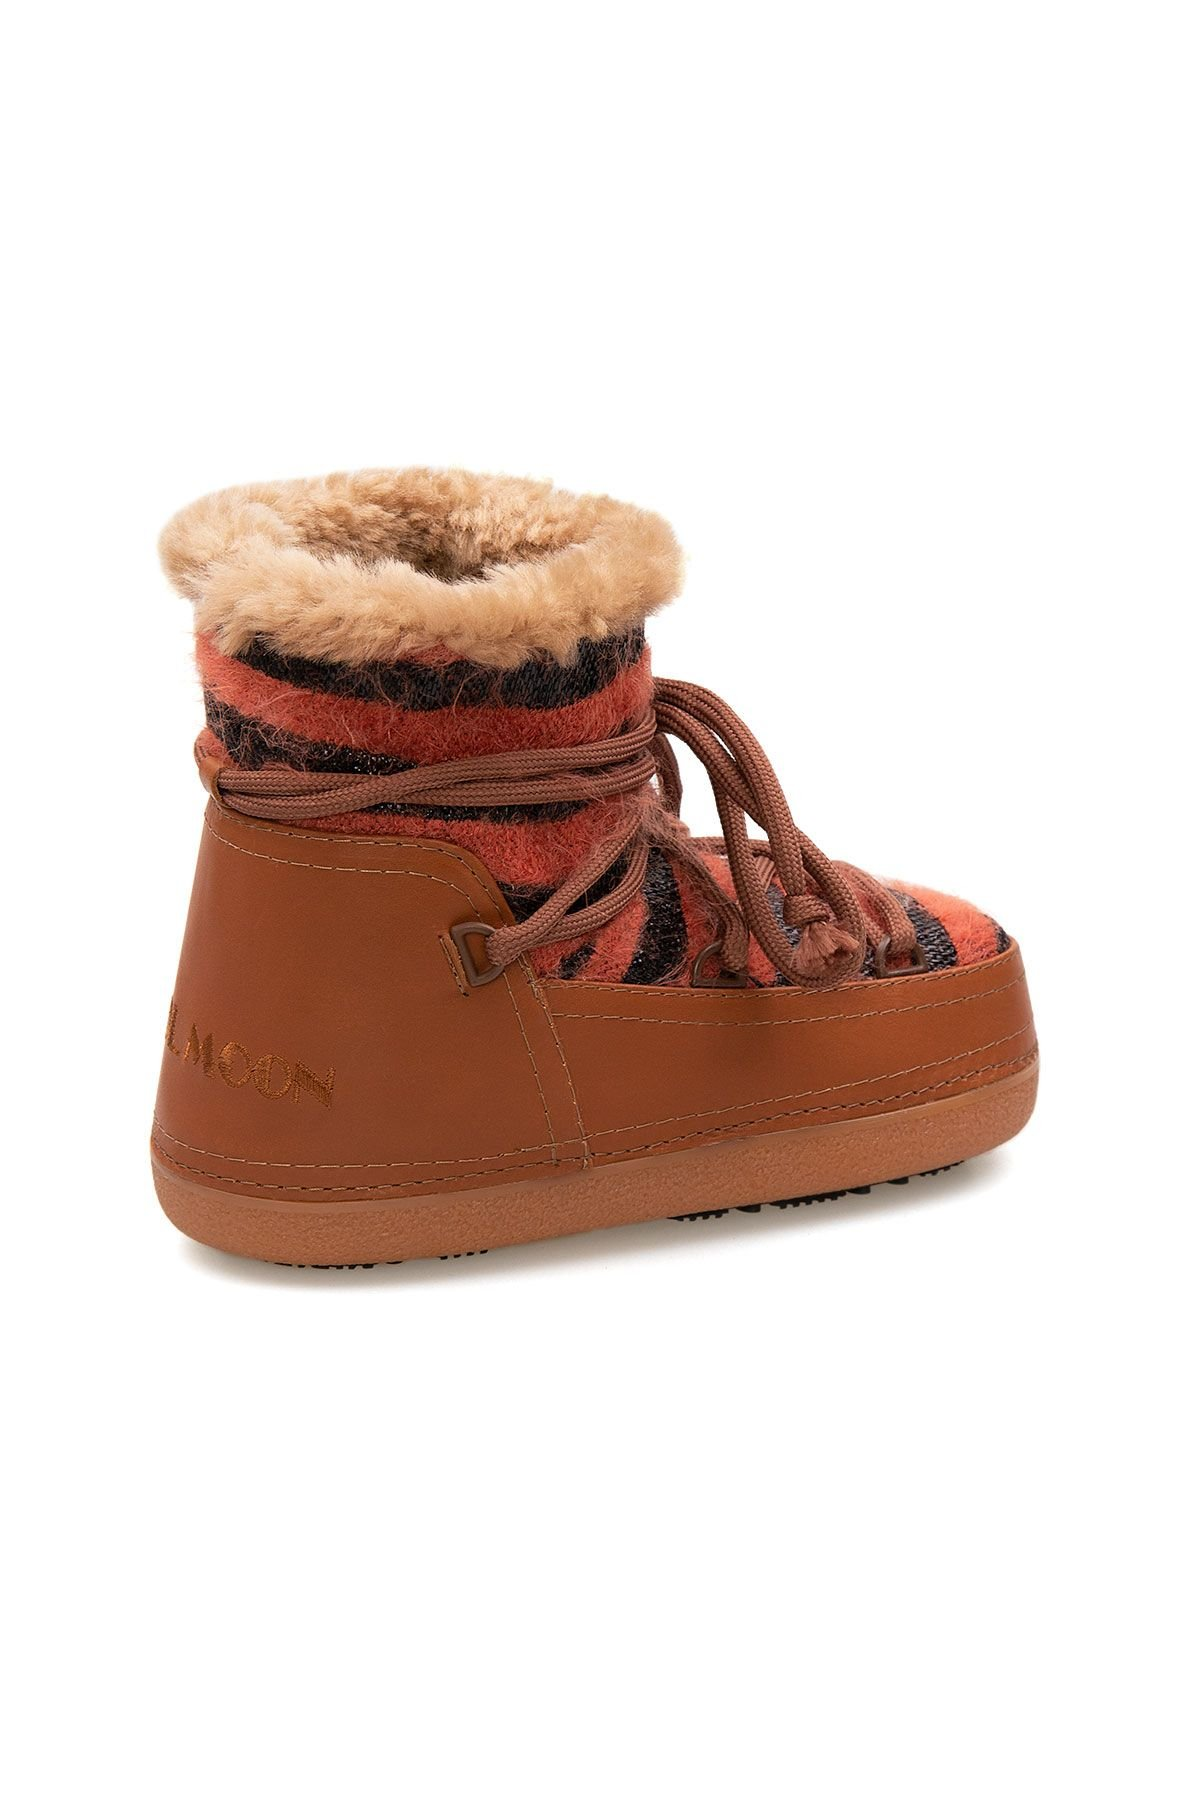 Cool Moon Genuine Sheepskin Lined Women's Snow Boots 251305 Ginger